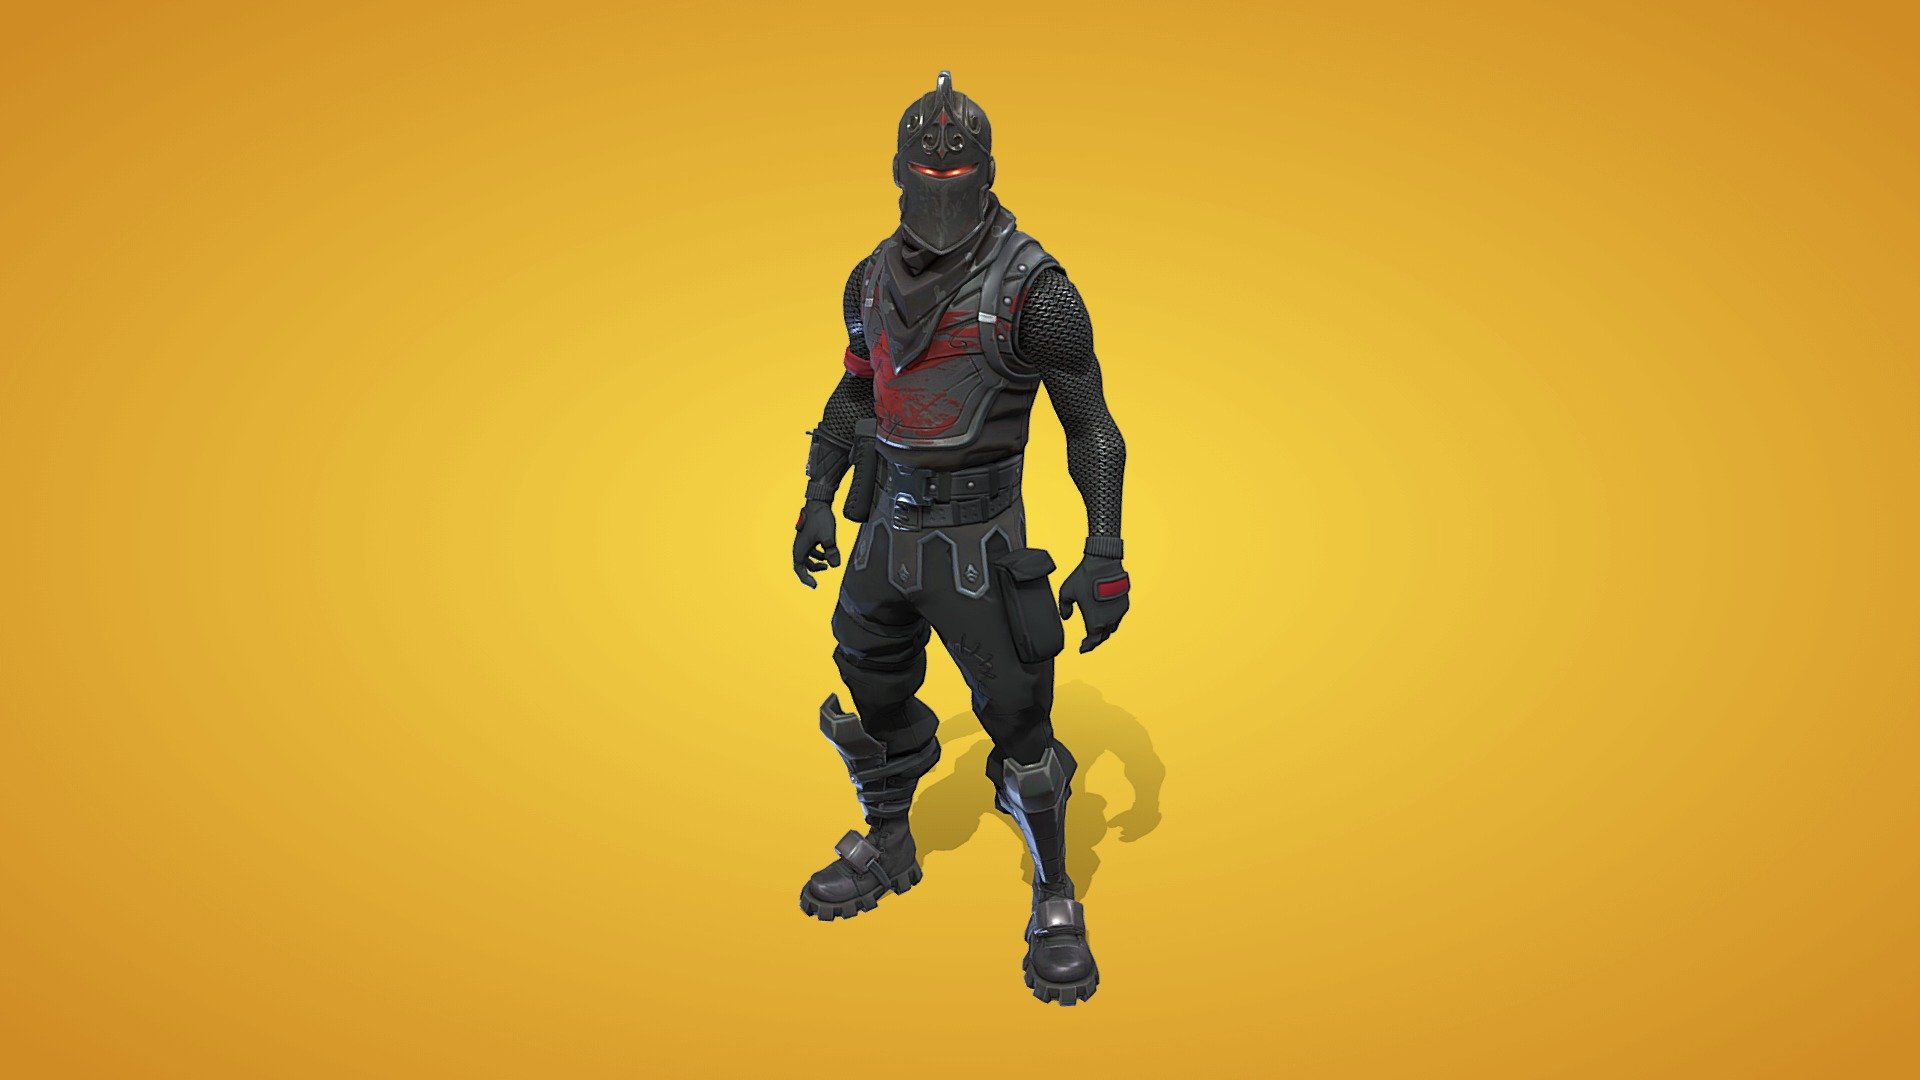 Black Knight Outfit 3d Model By Fortnite Skins